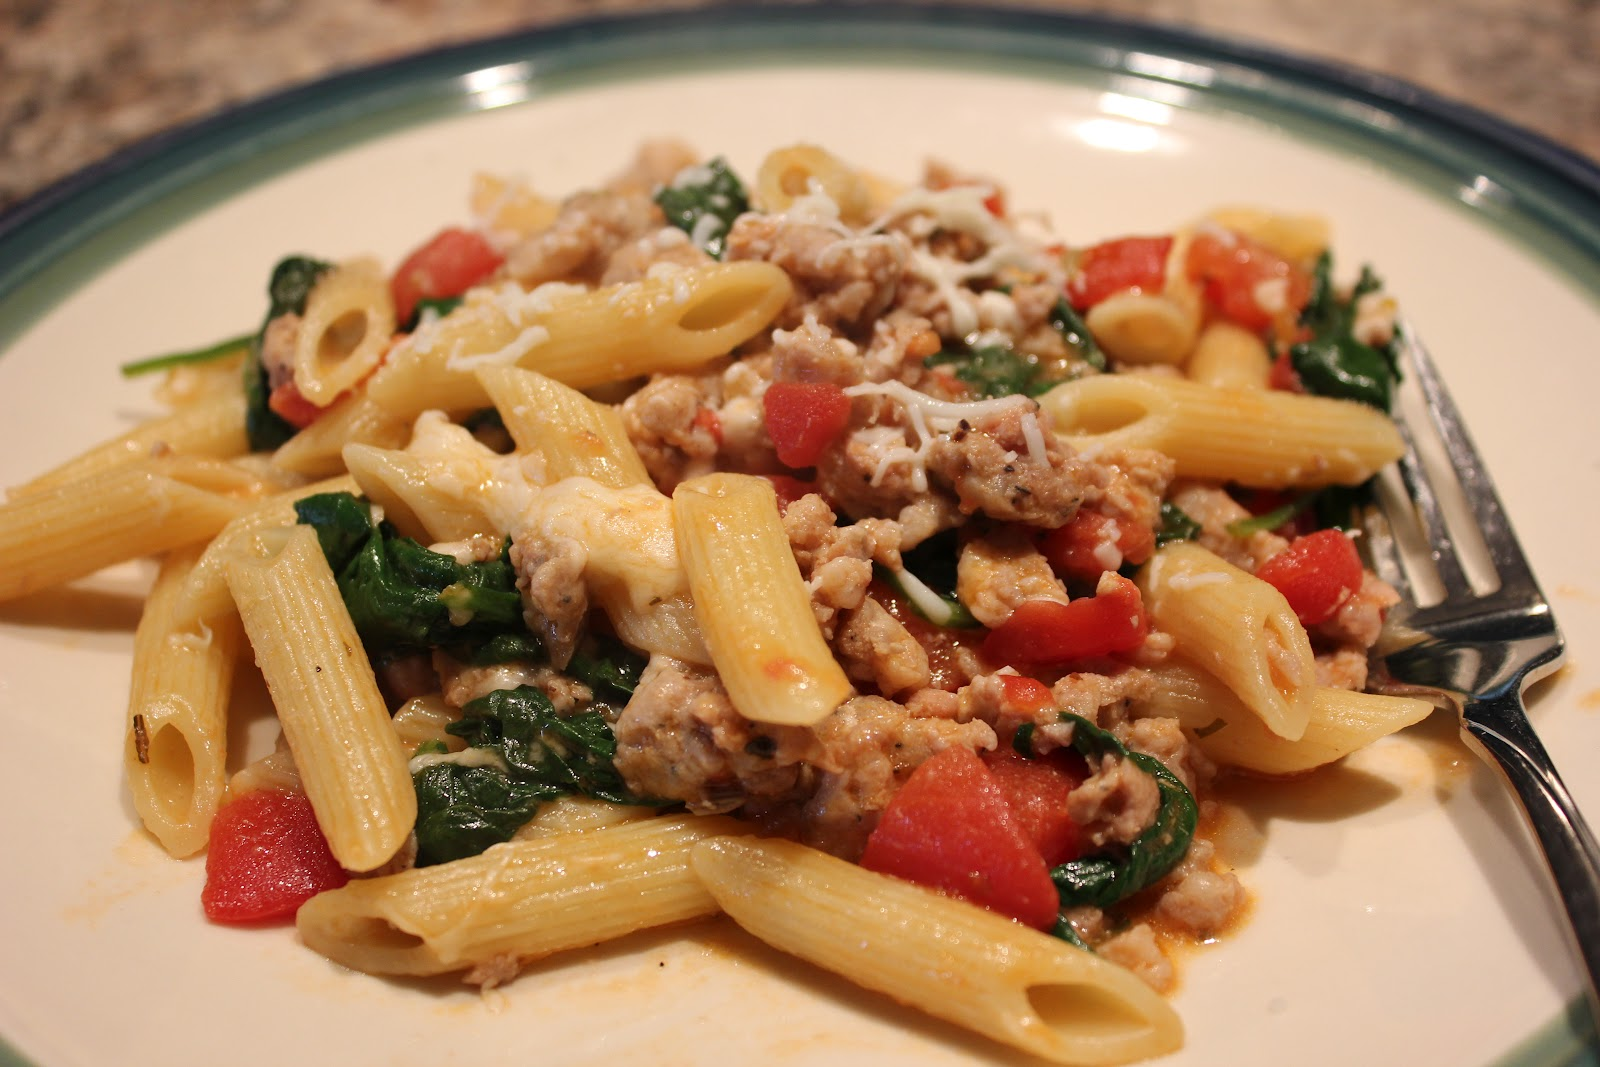 The Busy Moms' Recipe Box: Sausage, Spinach, and Tomato Pasta